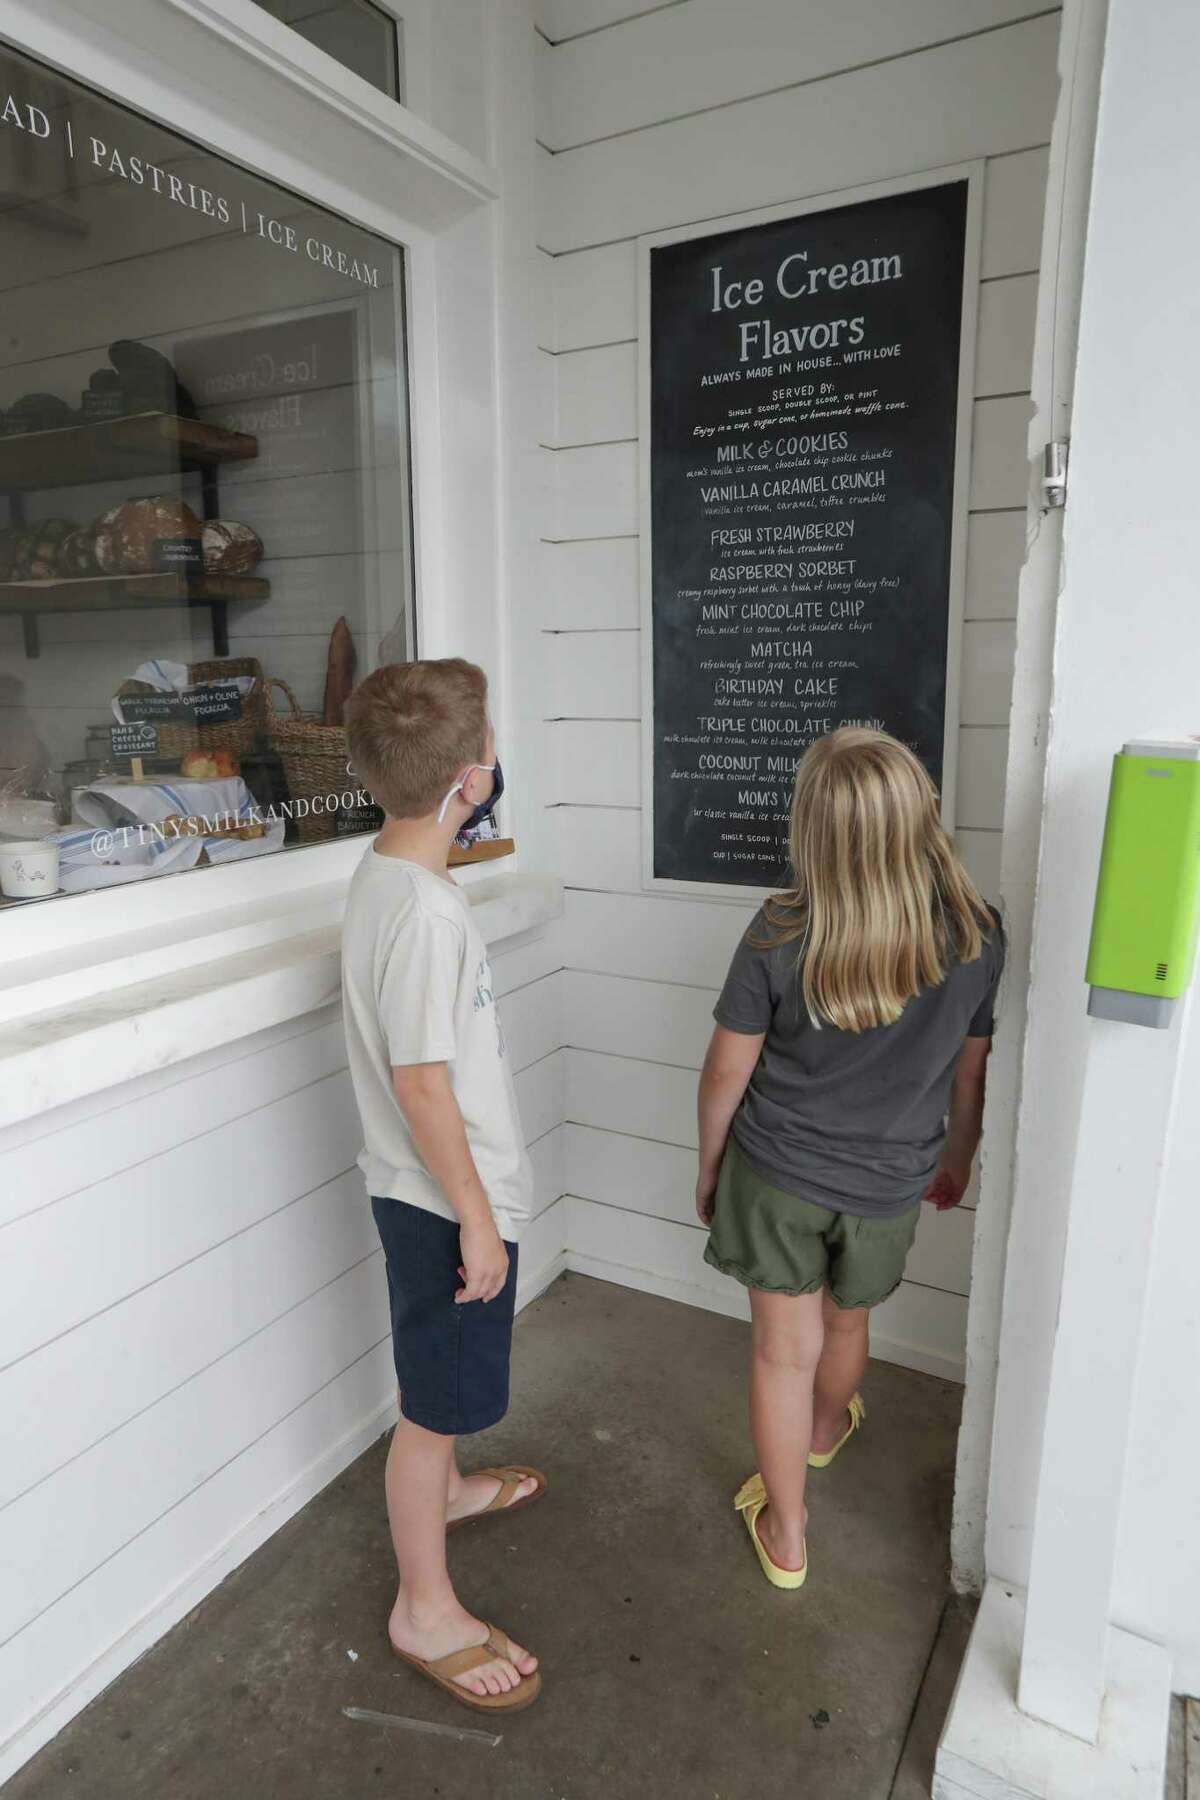 Jace Sonnier, 12, and his sister Jordyn, 10, look at the ice cream menu Saturday, May 8, 2021, in Houston.